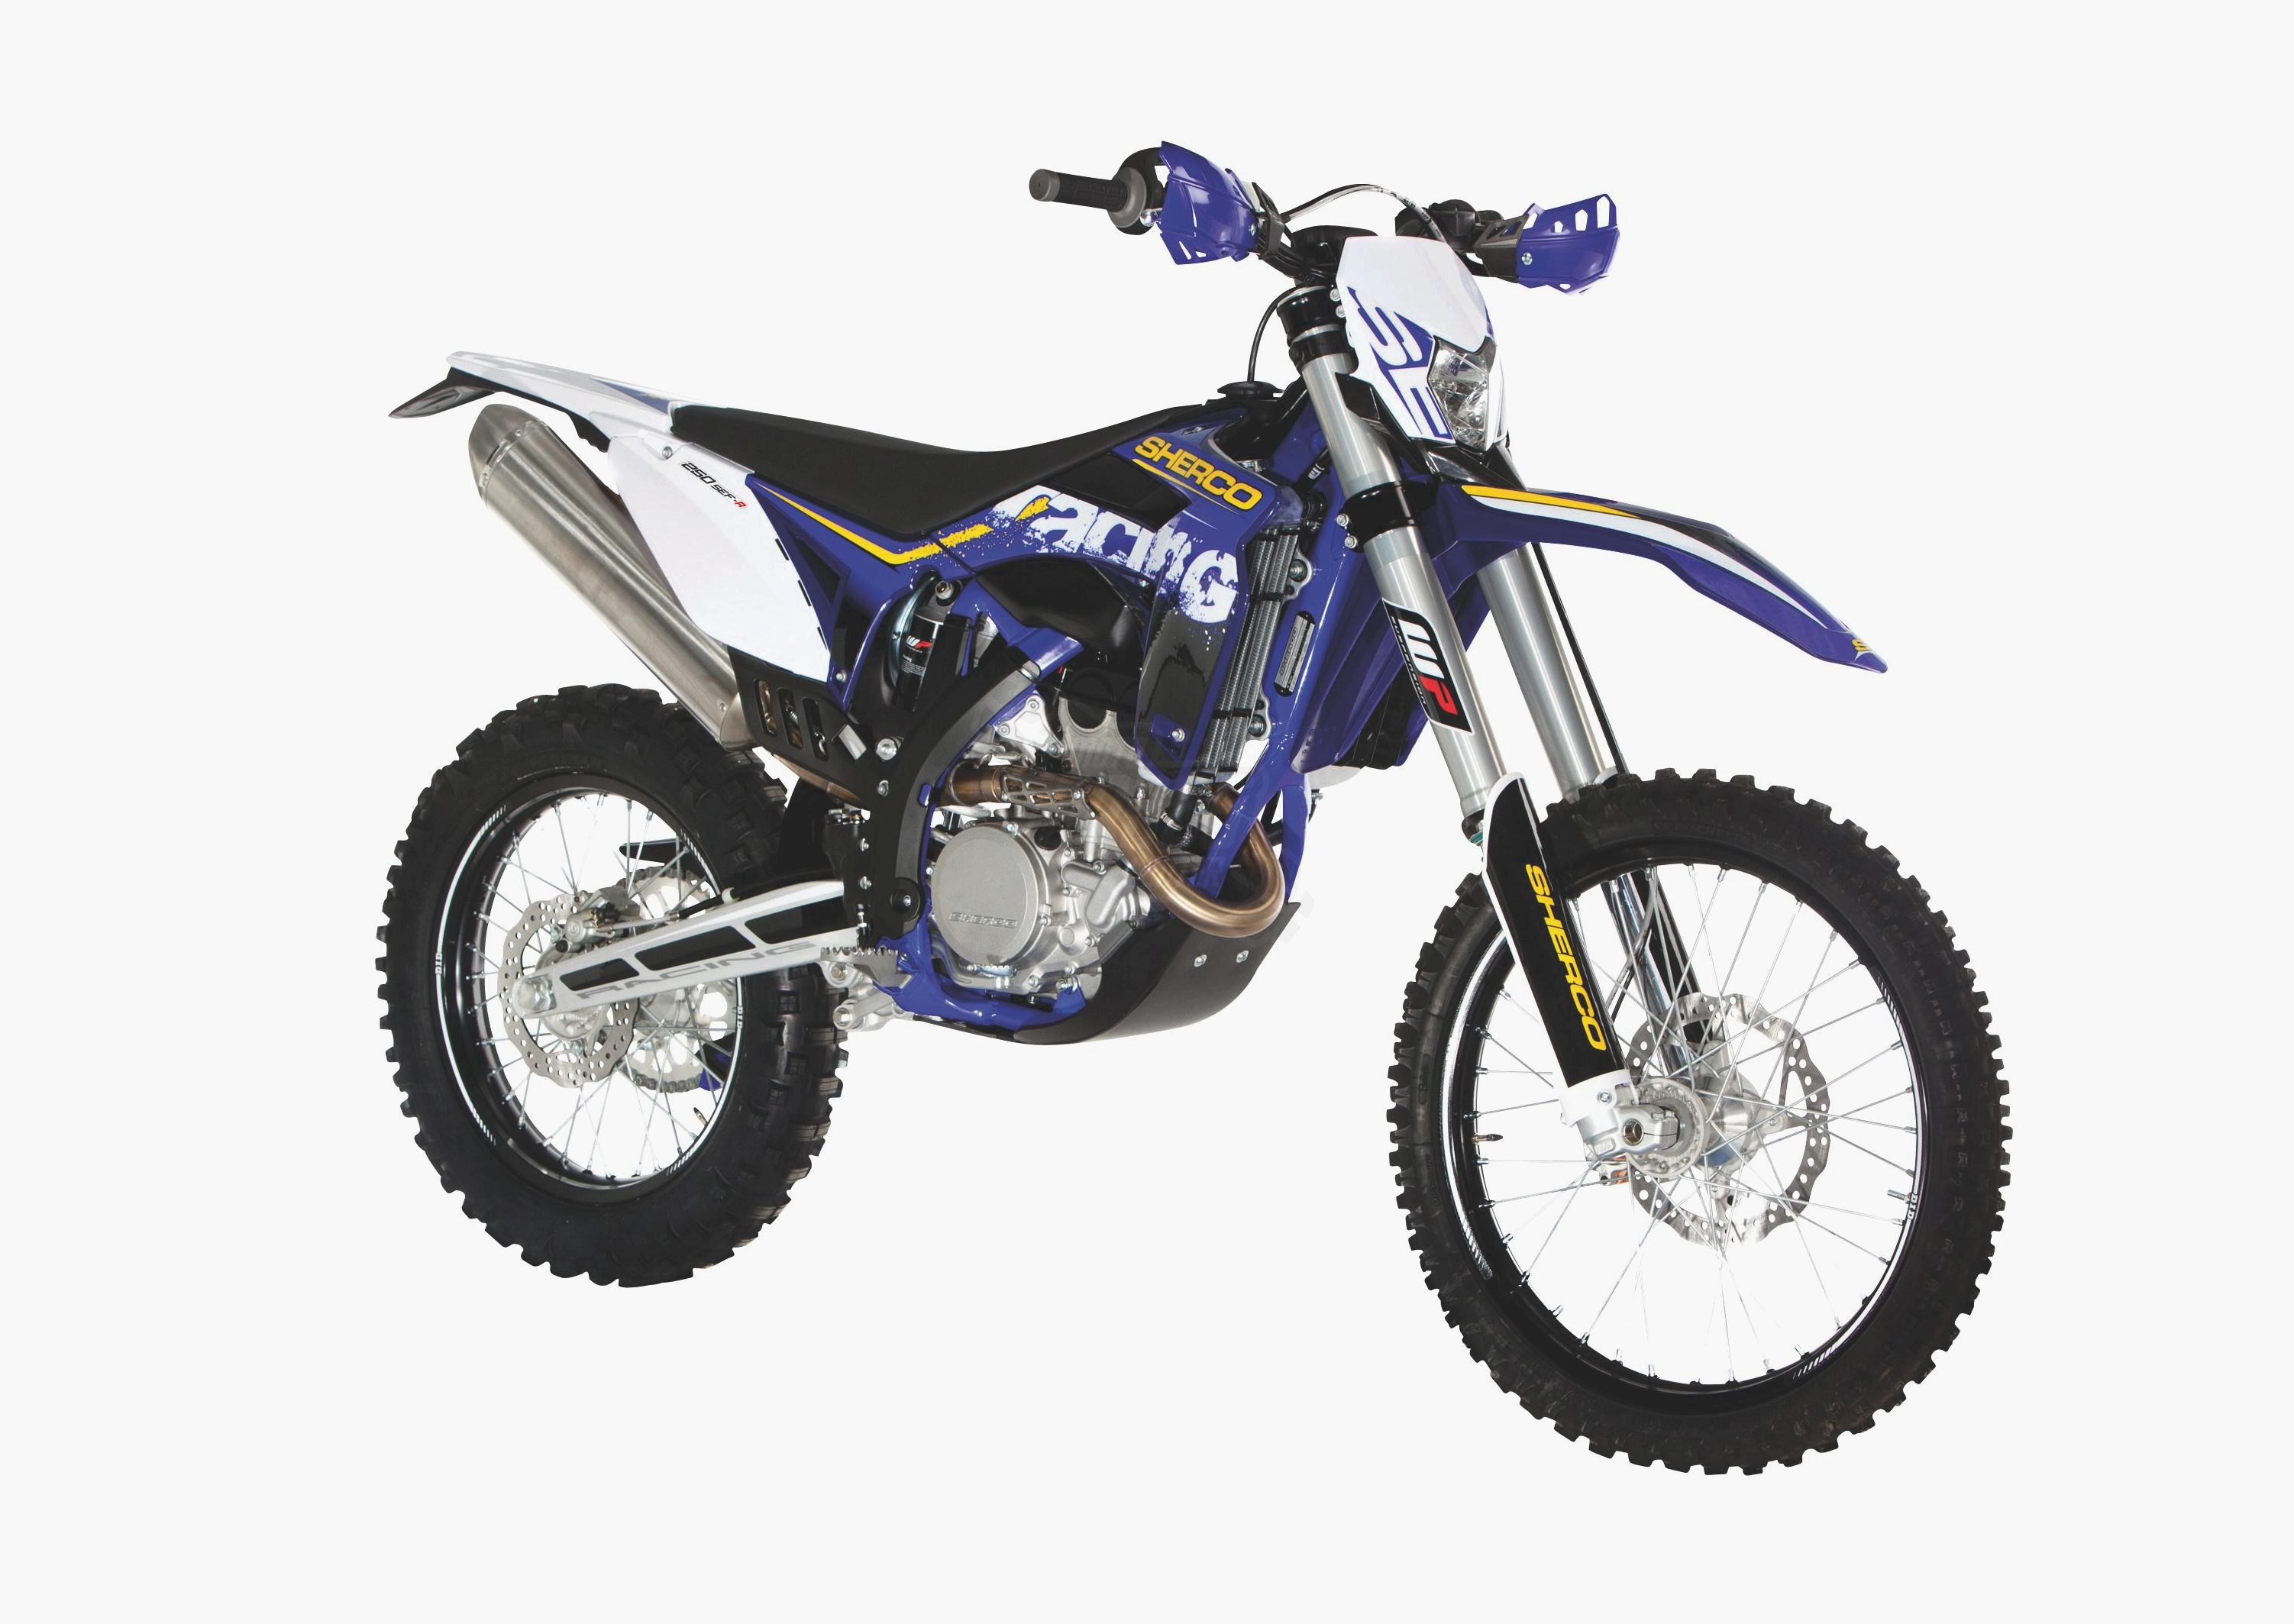 Sherco 125 SM Ipone Replica images #124517